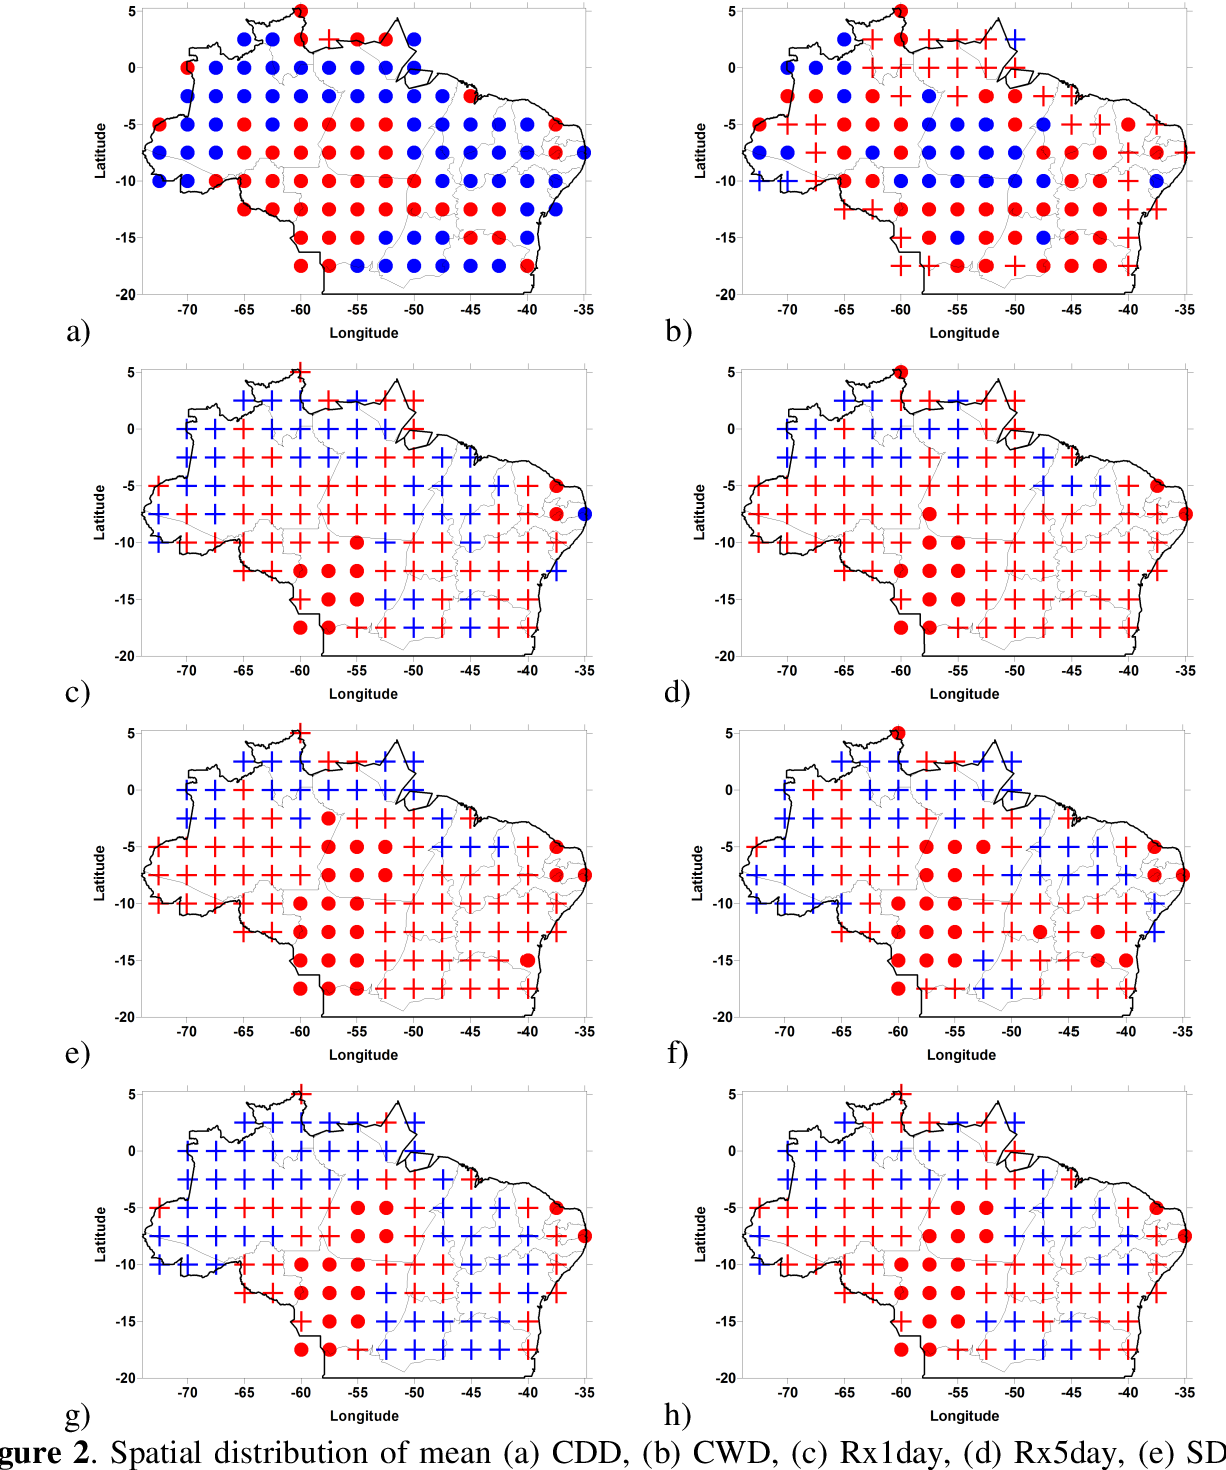 Figure 2. Spatial distribution of mean (a) CDD, (b) CWD, (c) Rx1day, (d) Rx5day, (e) SDII, (f) R10mm, (g) R20mm and (h) R50mm indices trends. () and (●) are positive and negative trends, respectively, statistically significant at 5% level. () and (●) are statistically not significant.